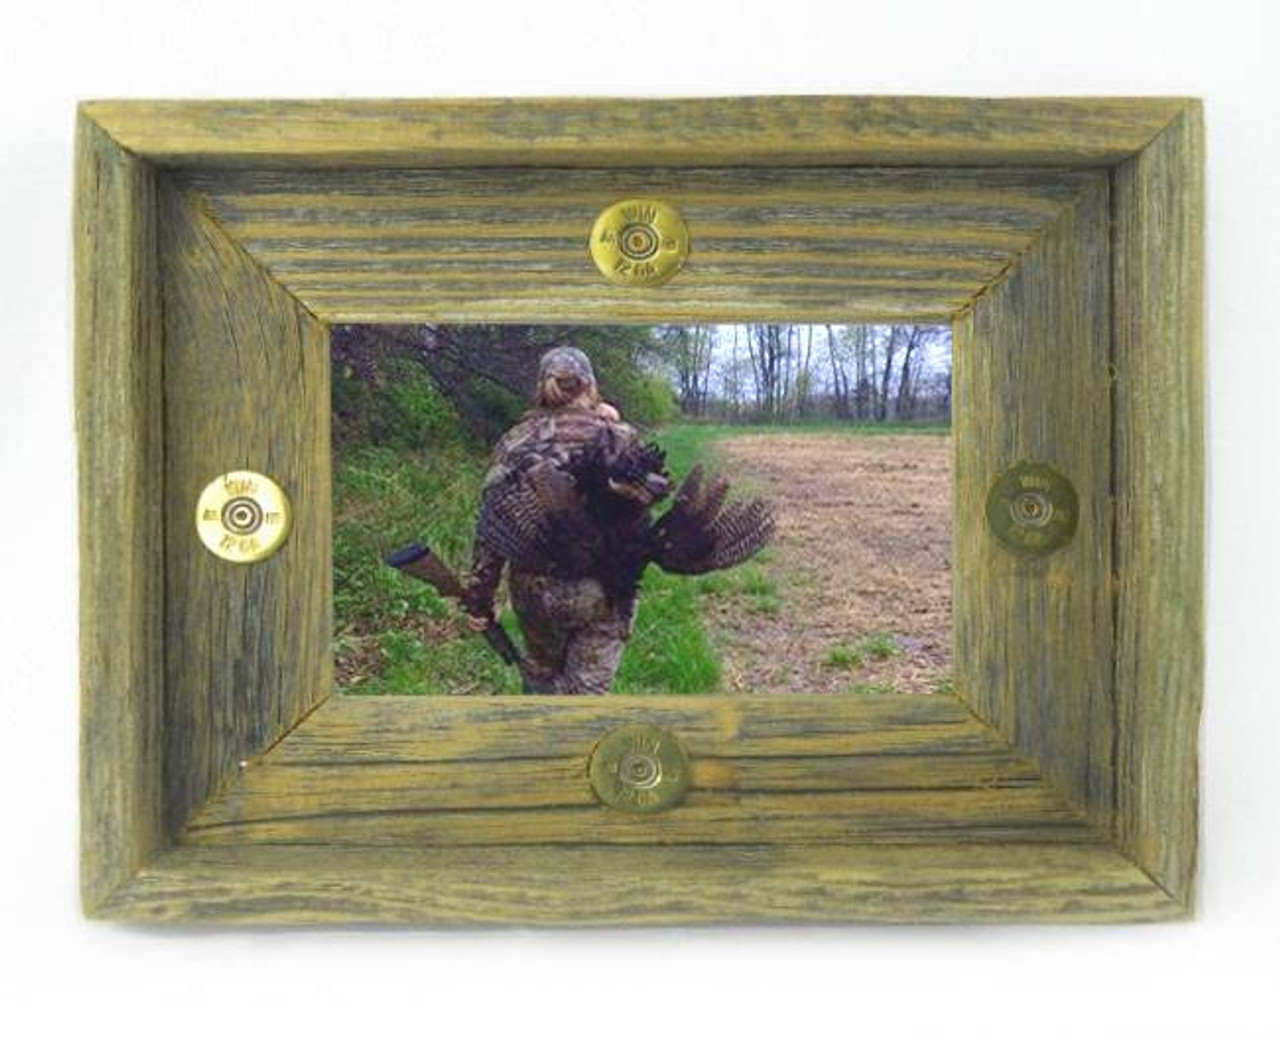 12 Gauge Shells 4x6 Barn Wood Photo Frame